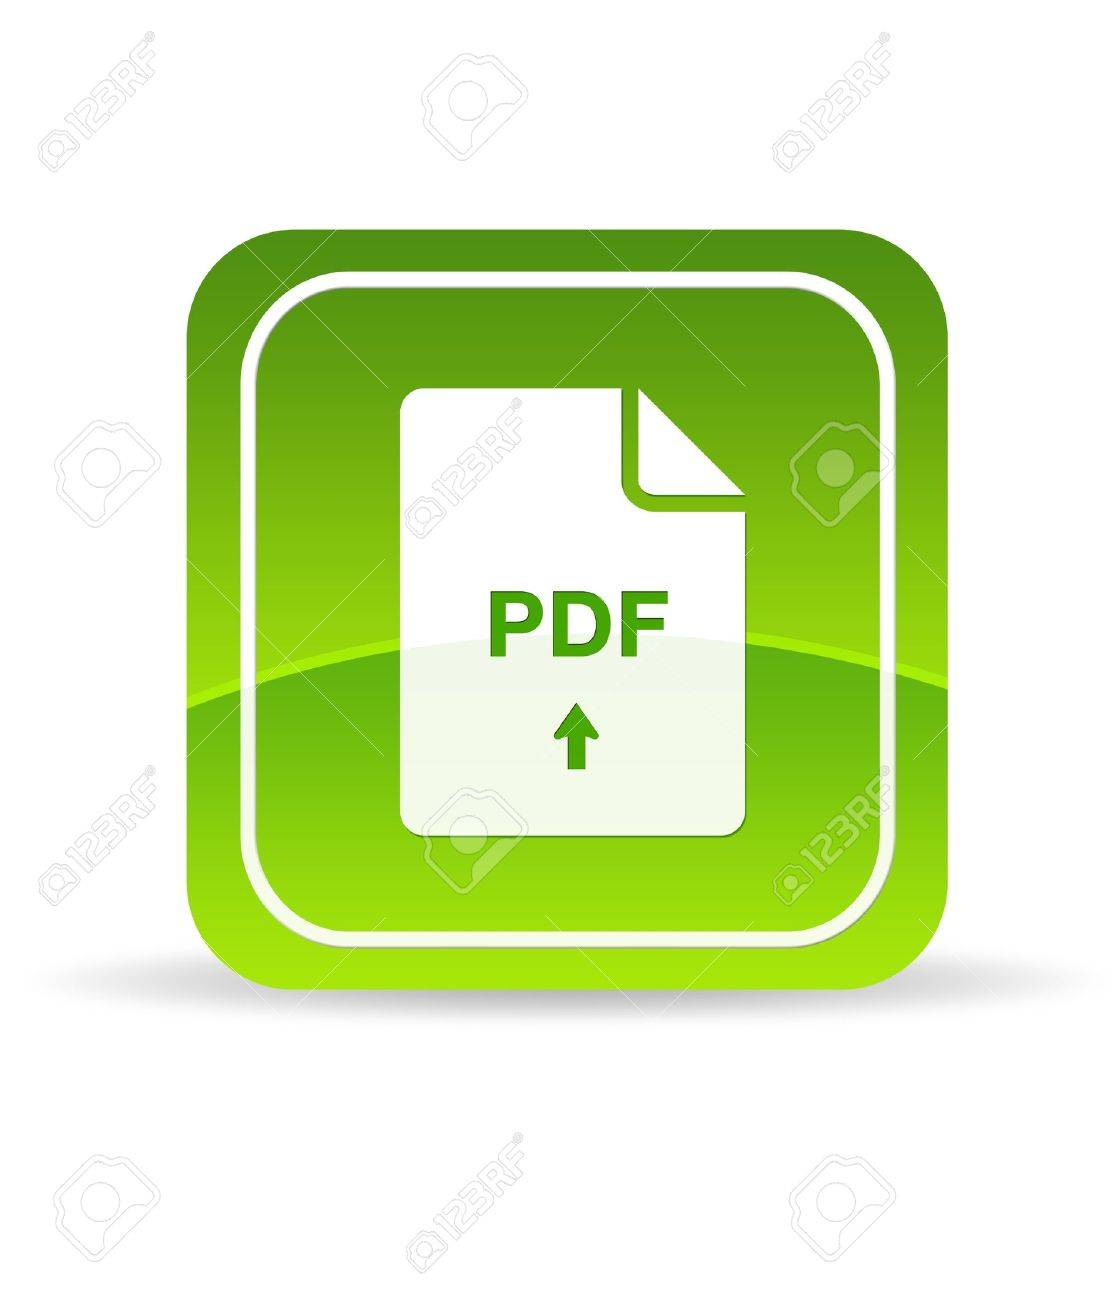 High resolution green pdf icon on white background. - 9750062